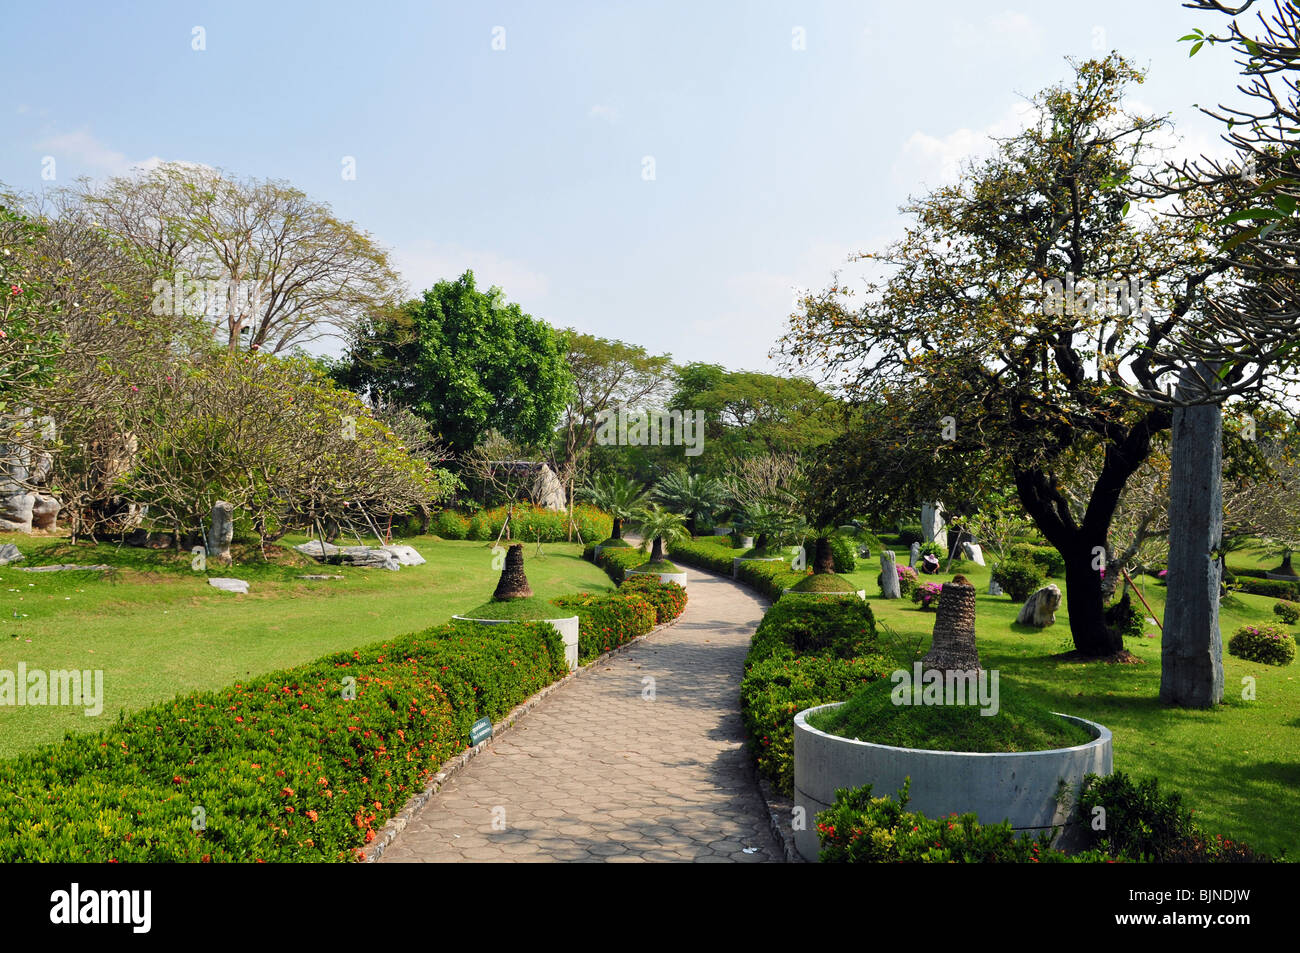 Asian park, paved path in park - Stock Image